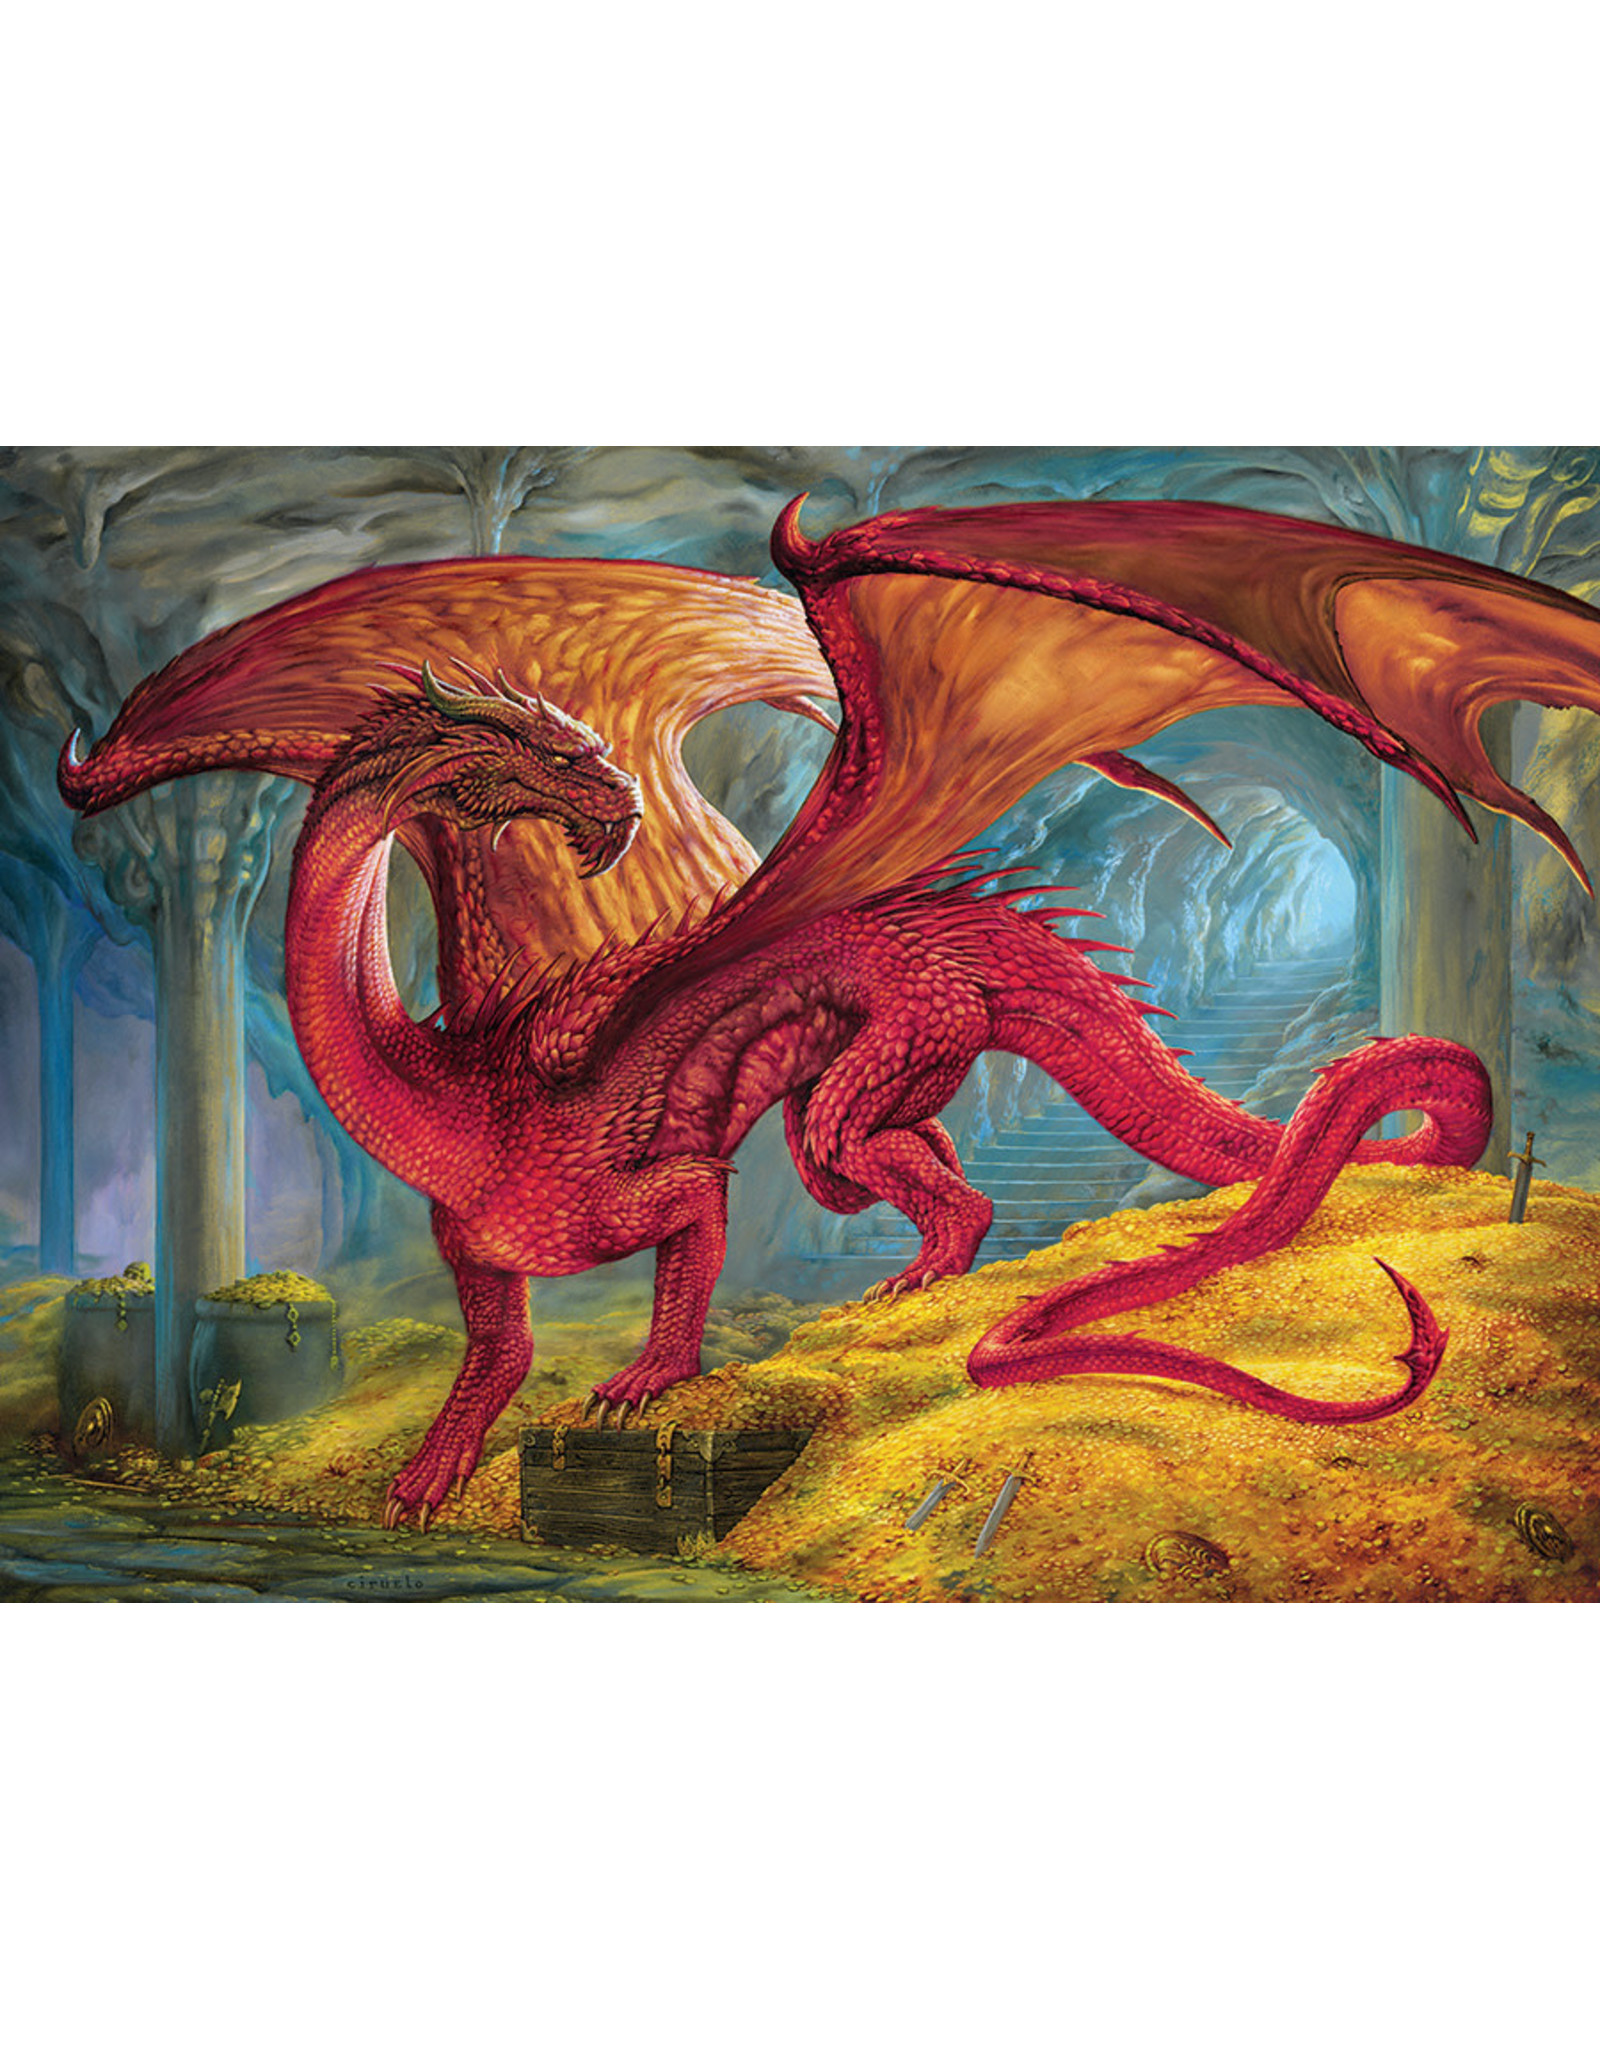 Cobble Hill 1000PC PUZZLE - RED DRAGON'S TREASURE